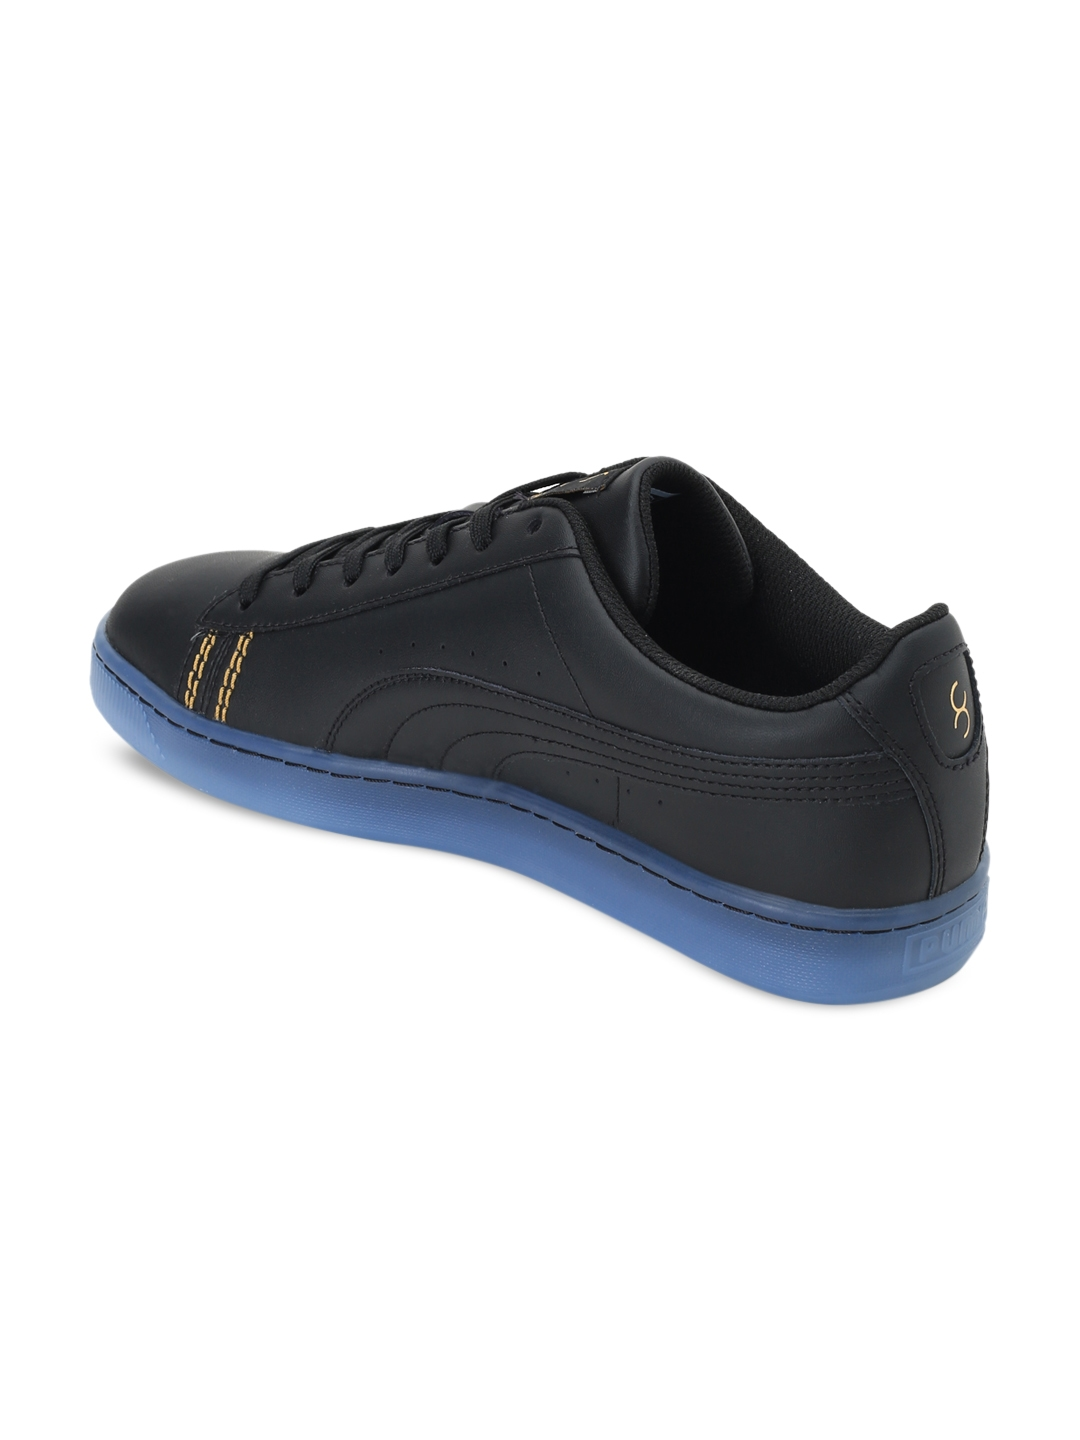 Buy Puma Unisex Black Basket Classic One8 Sneakers - Casual Shoes ... 5f8105556